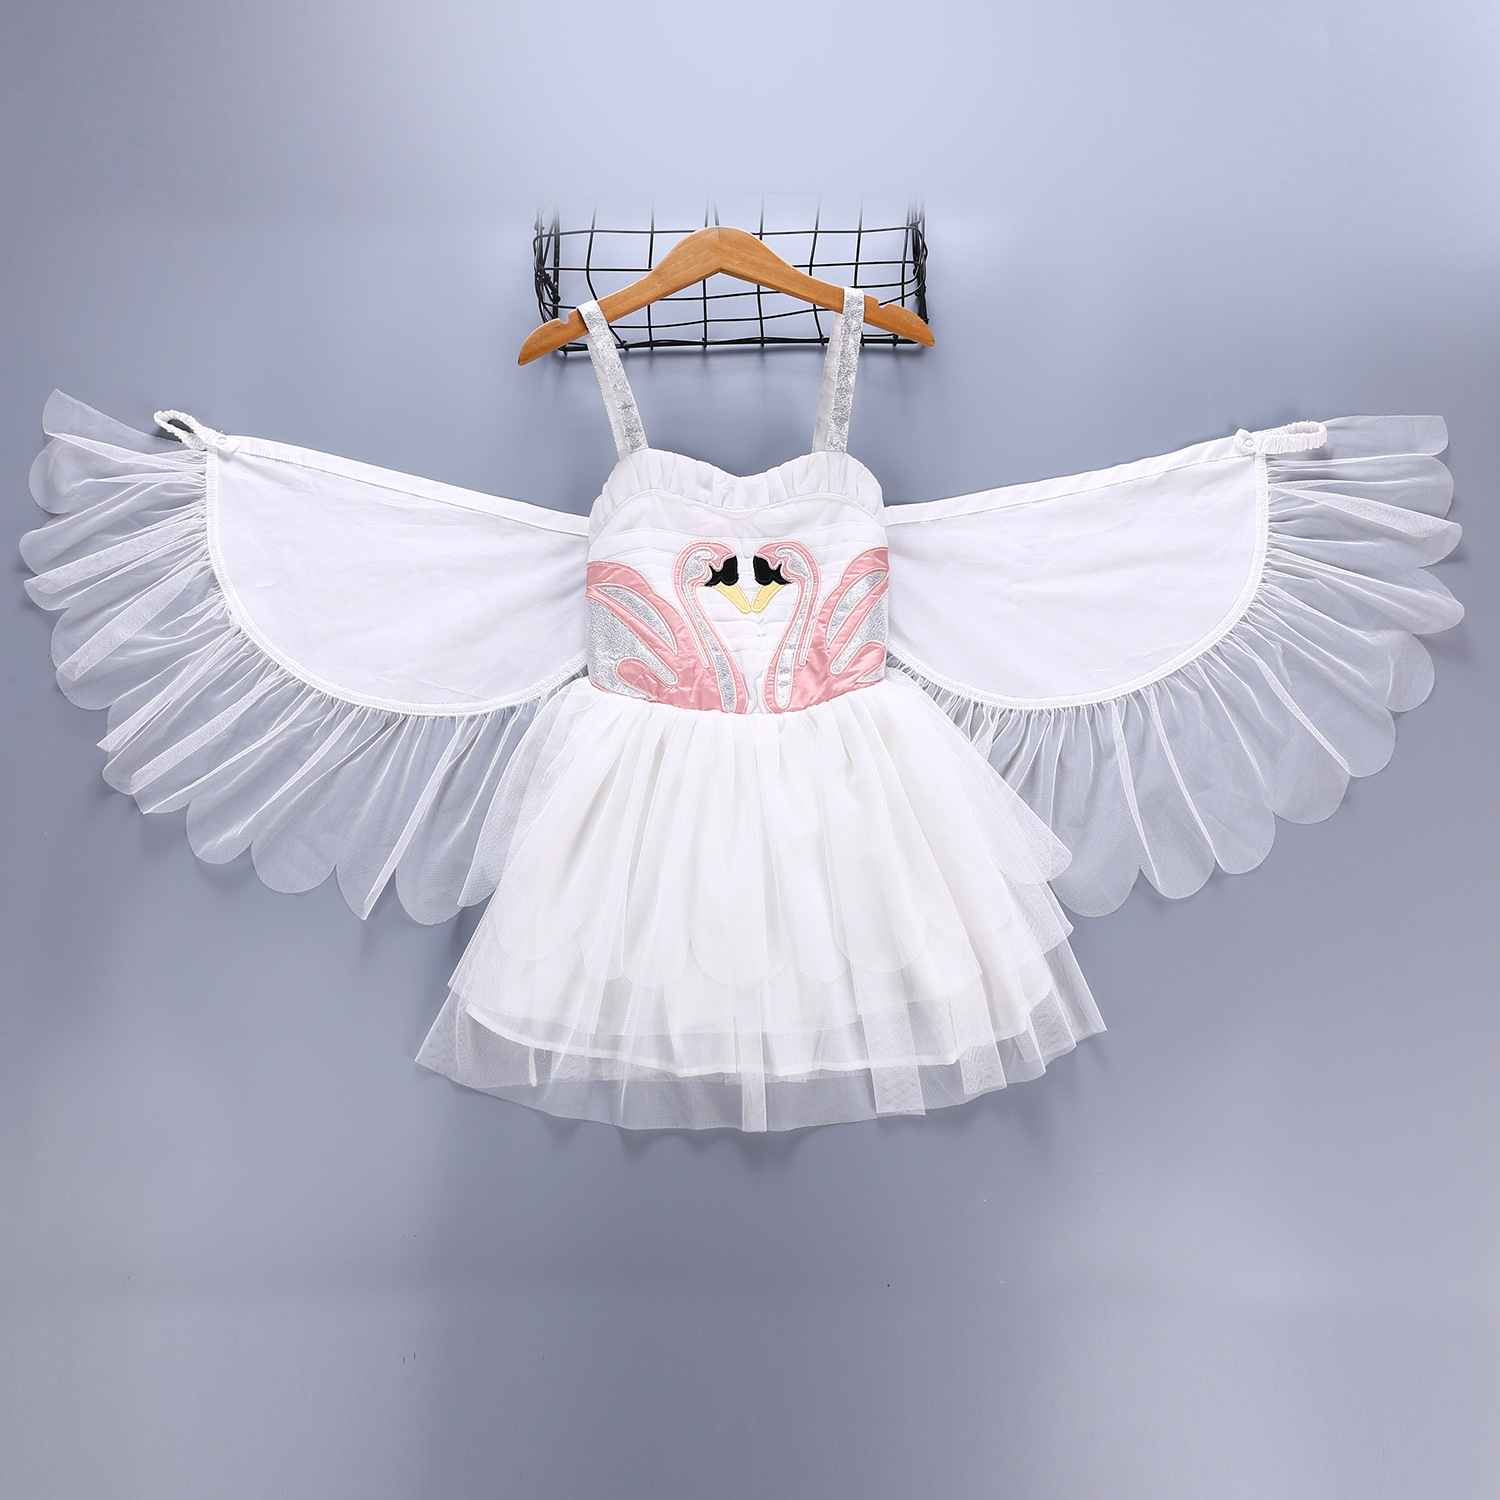 33186b8238098 Details about Flamingo Tutu Girls Dress Dance Clothes Baby Kids Christmas angel  Party Dresses